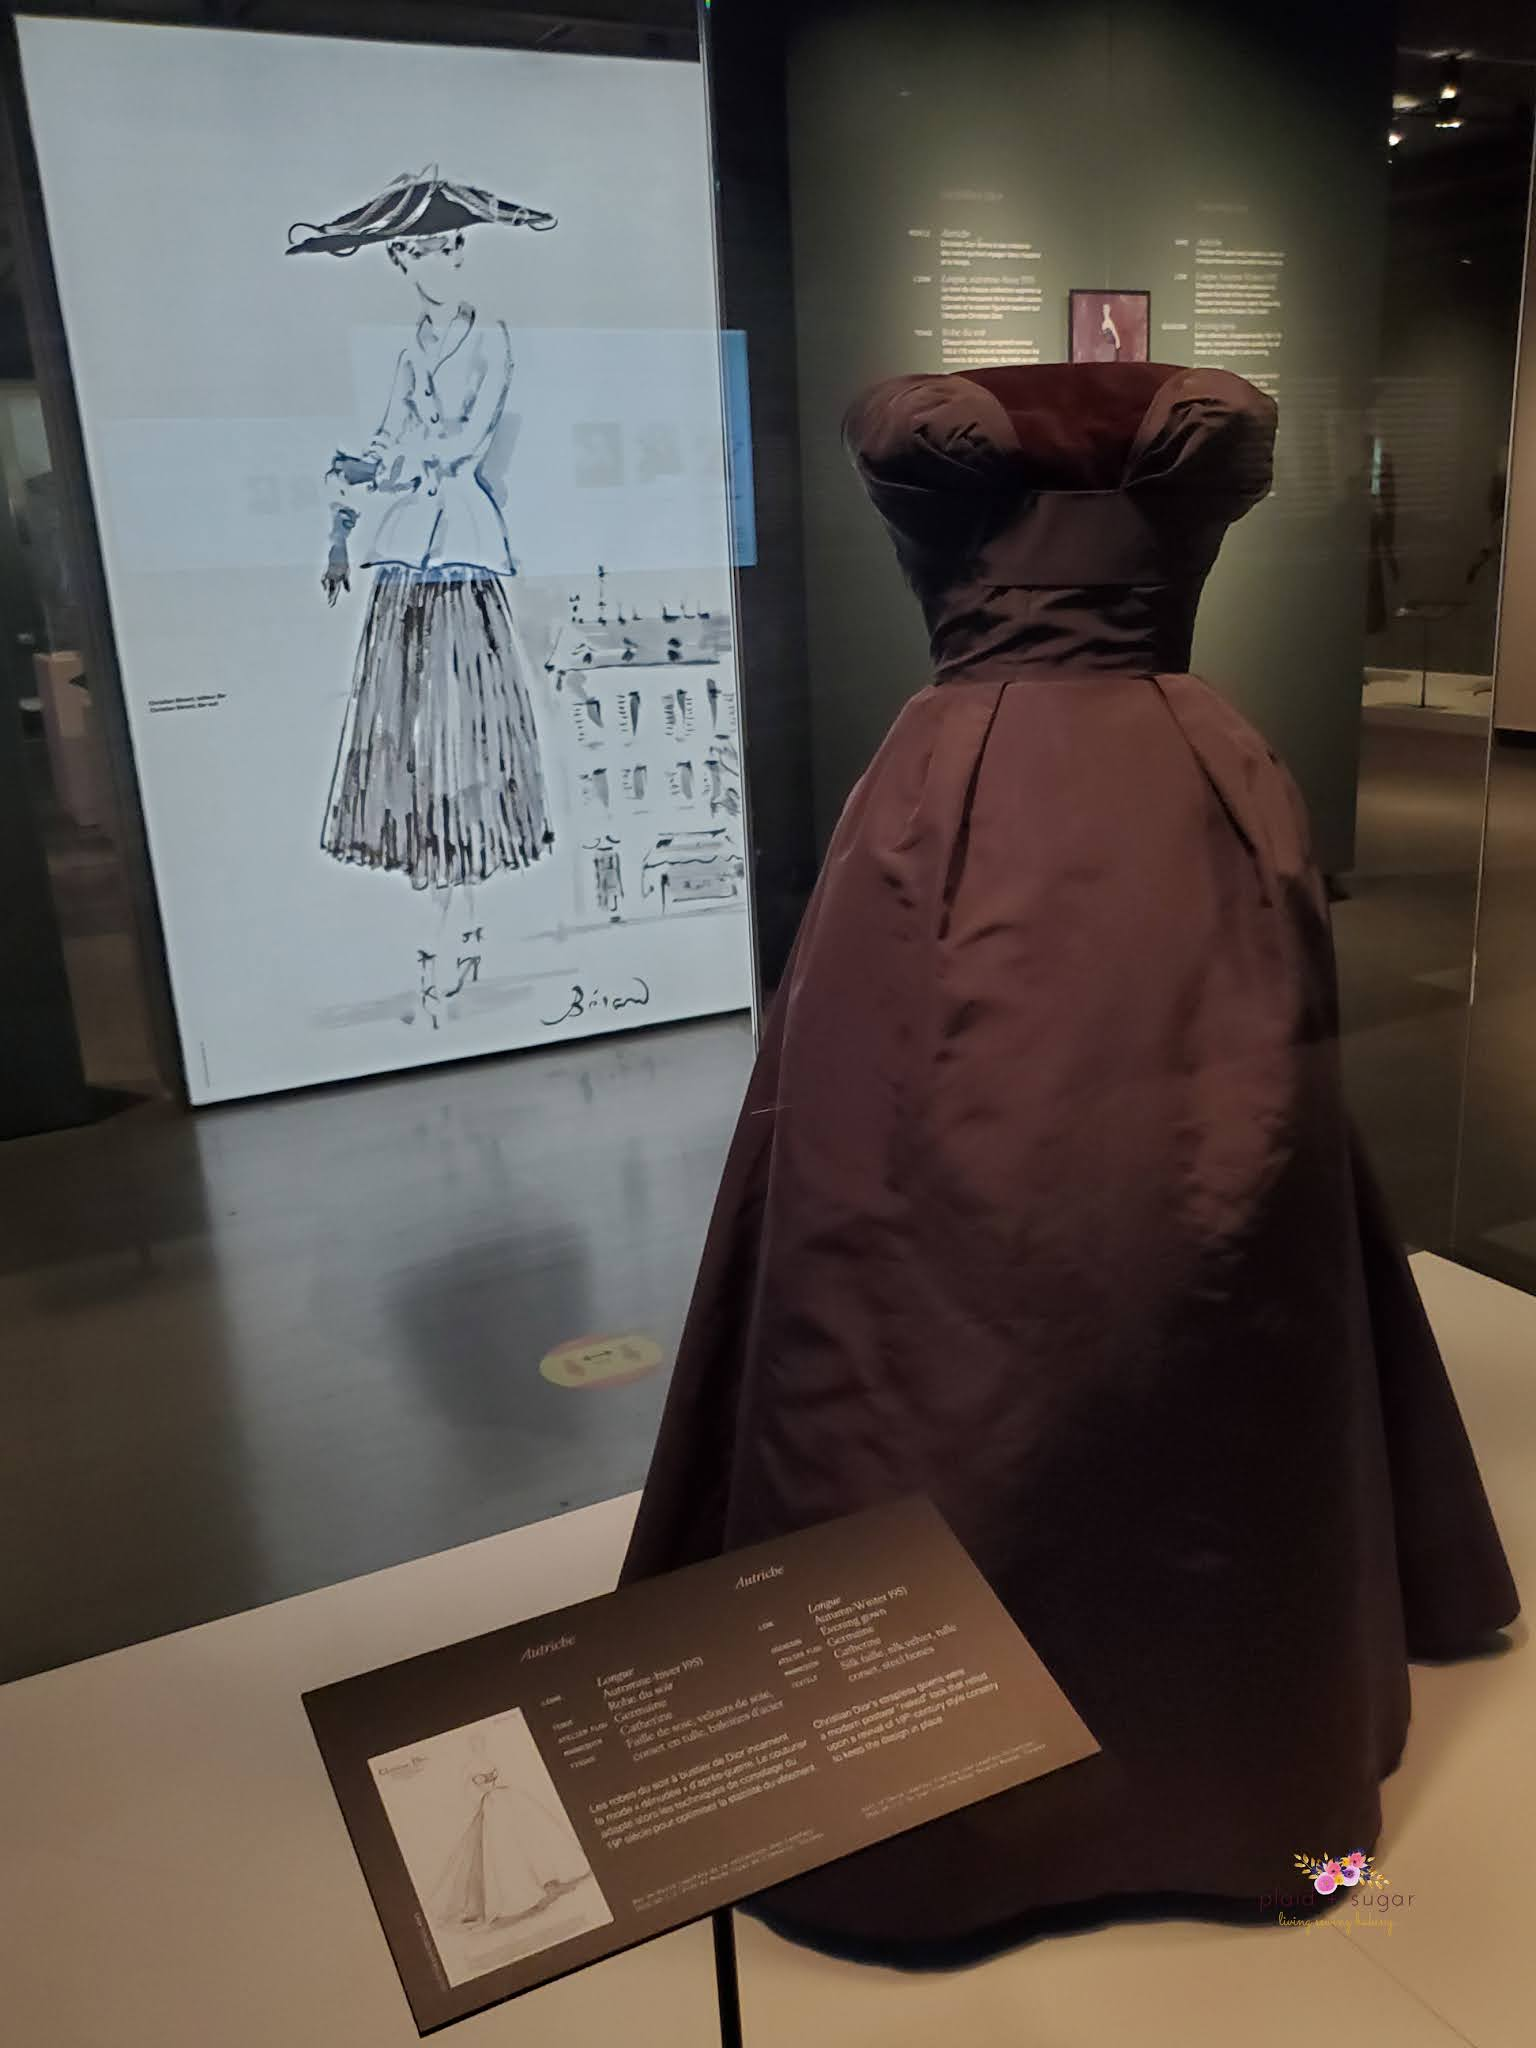 Visiting the Dior Exhibit at the McCord Museum in Montreal